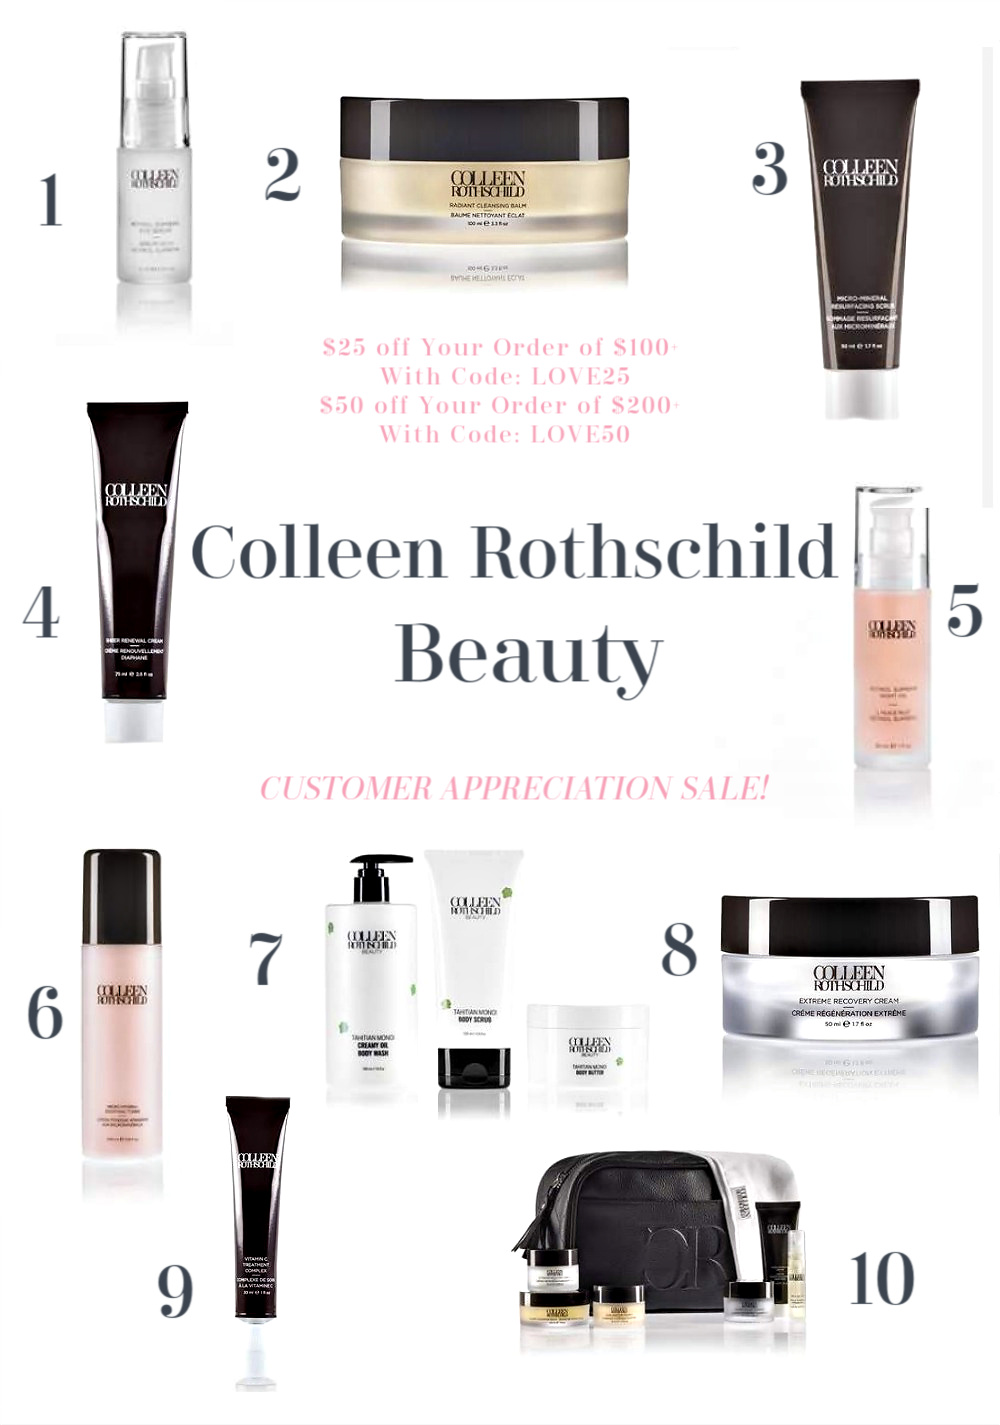 Customer Appreciation Sale with Colleen Rothschild